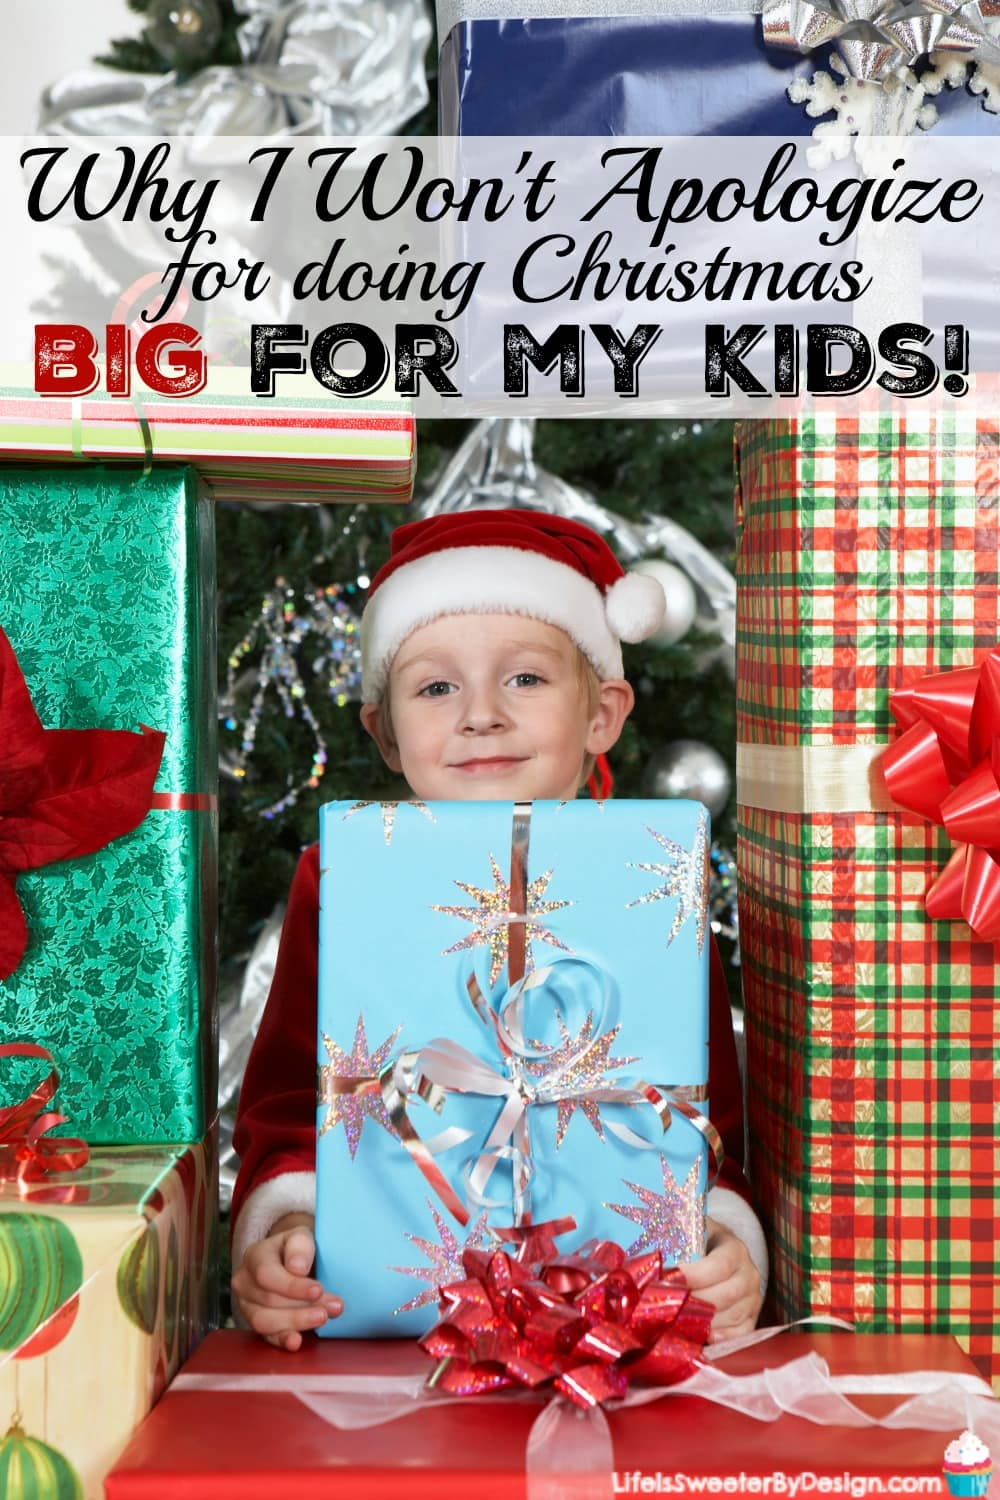 Find out why I won't apologize for doing Christmas big for my kids! I won't let the mommy wars impact how many gifts my children get for Christmas!